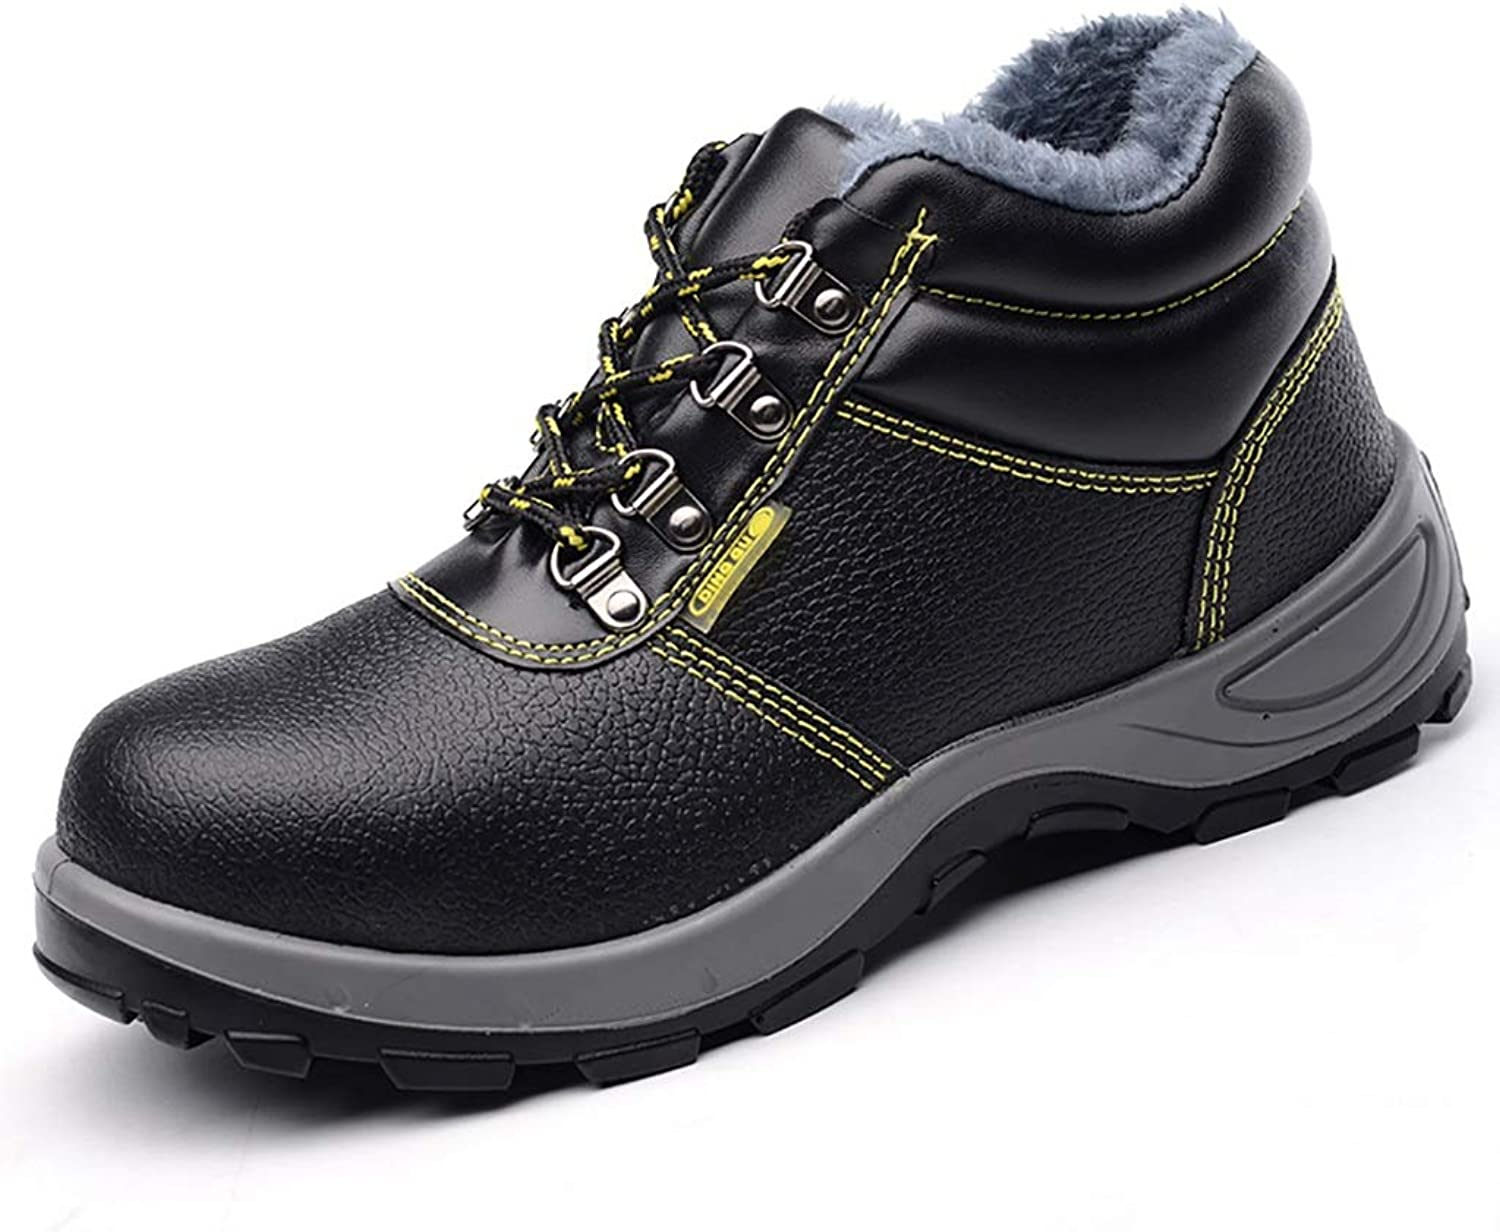 ZYFXZ Safety shoes Safety shoes men's safety boots steel toe caps anti-smashing puncture site safety work shoes work boots (color   Without velvet, Size   37)